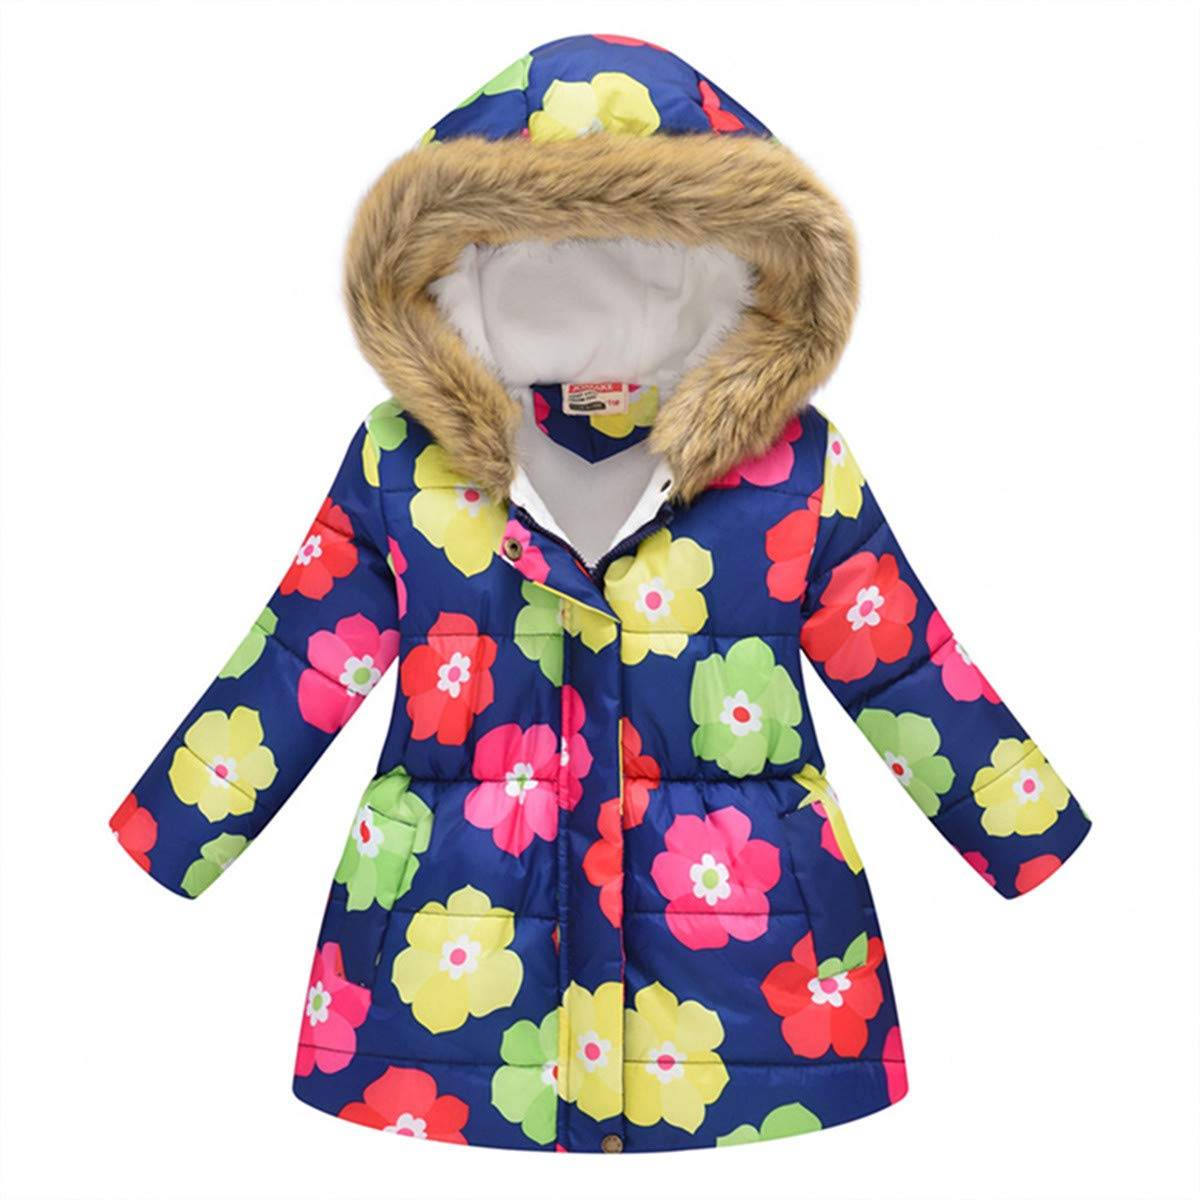 Miss Bei Girls Coat Water-Resistant Hooded Kids Toddler Winter Flower Print Parka Outwear Warm Cotton Coat Hooded Jacket